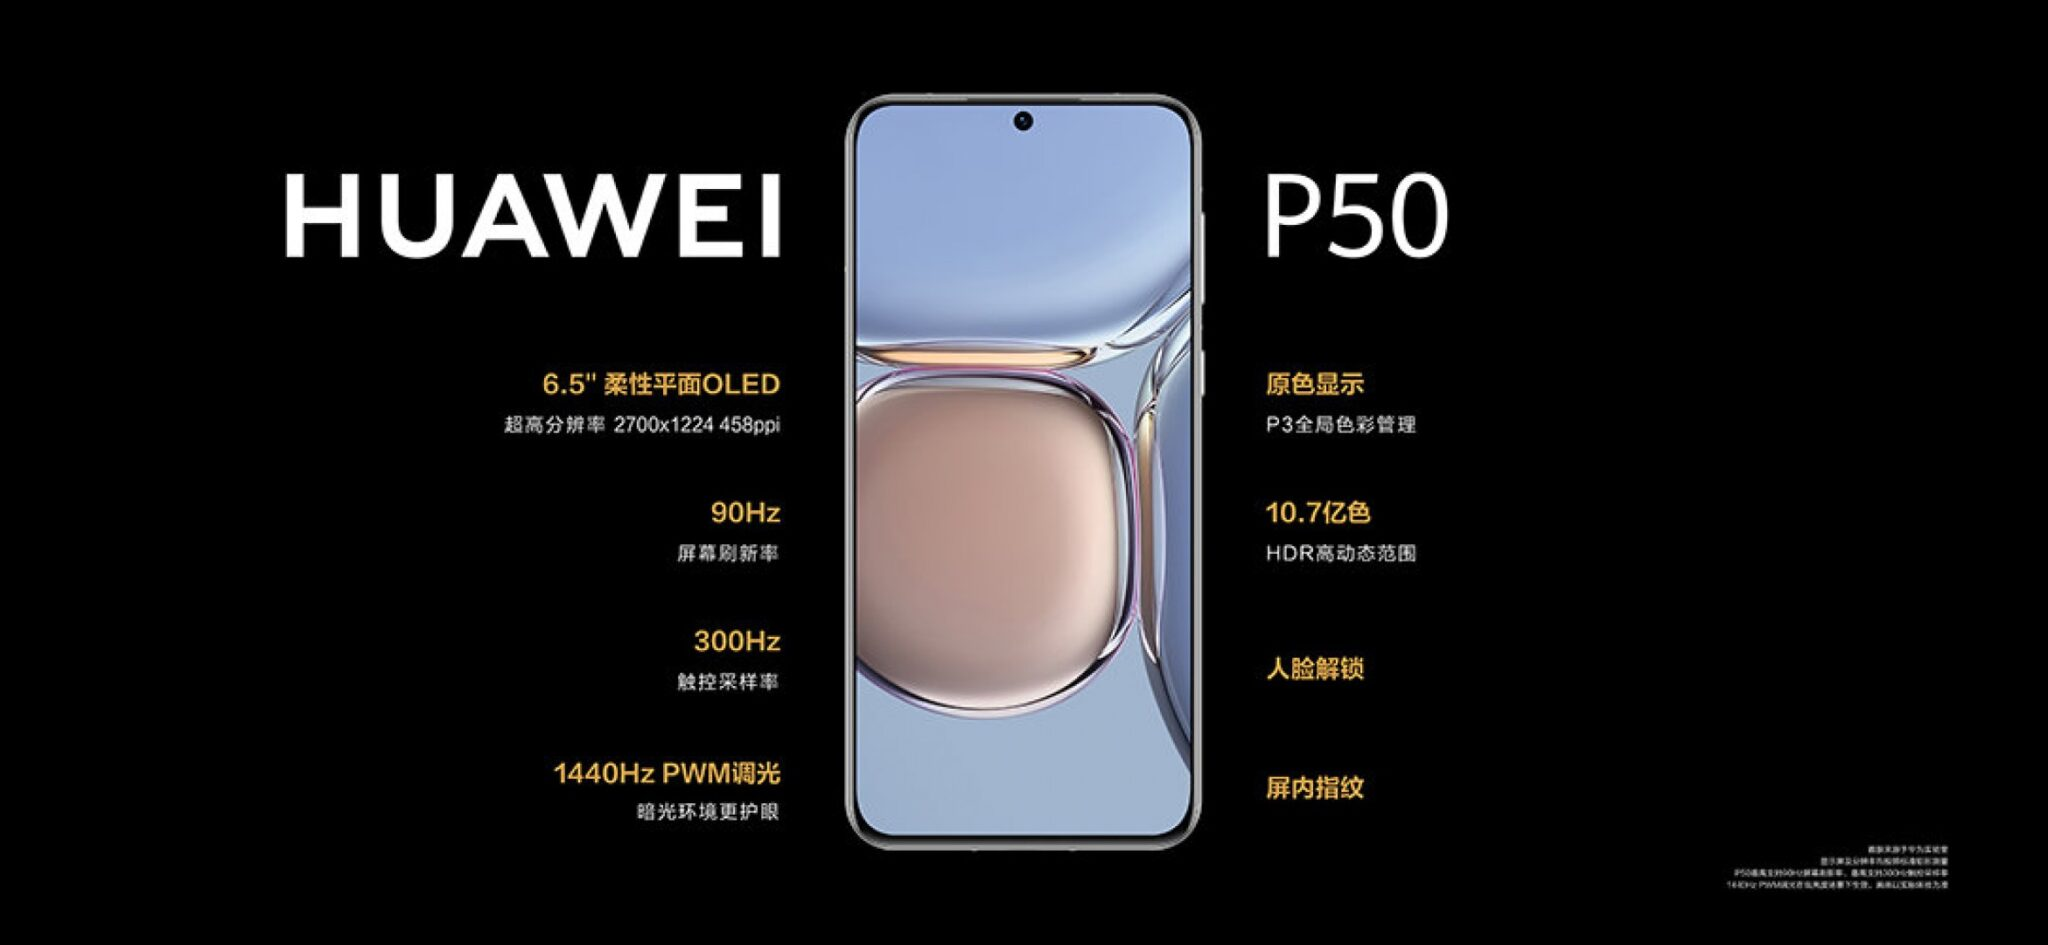 Huawei P50 and P50 Pro Launched With Best Cameras But No 5G